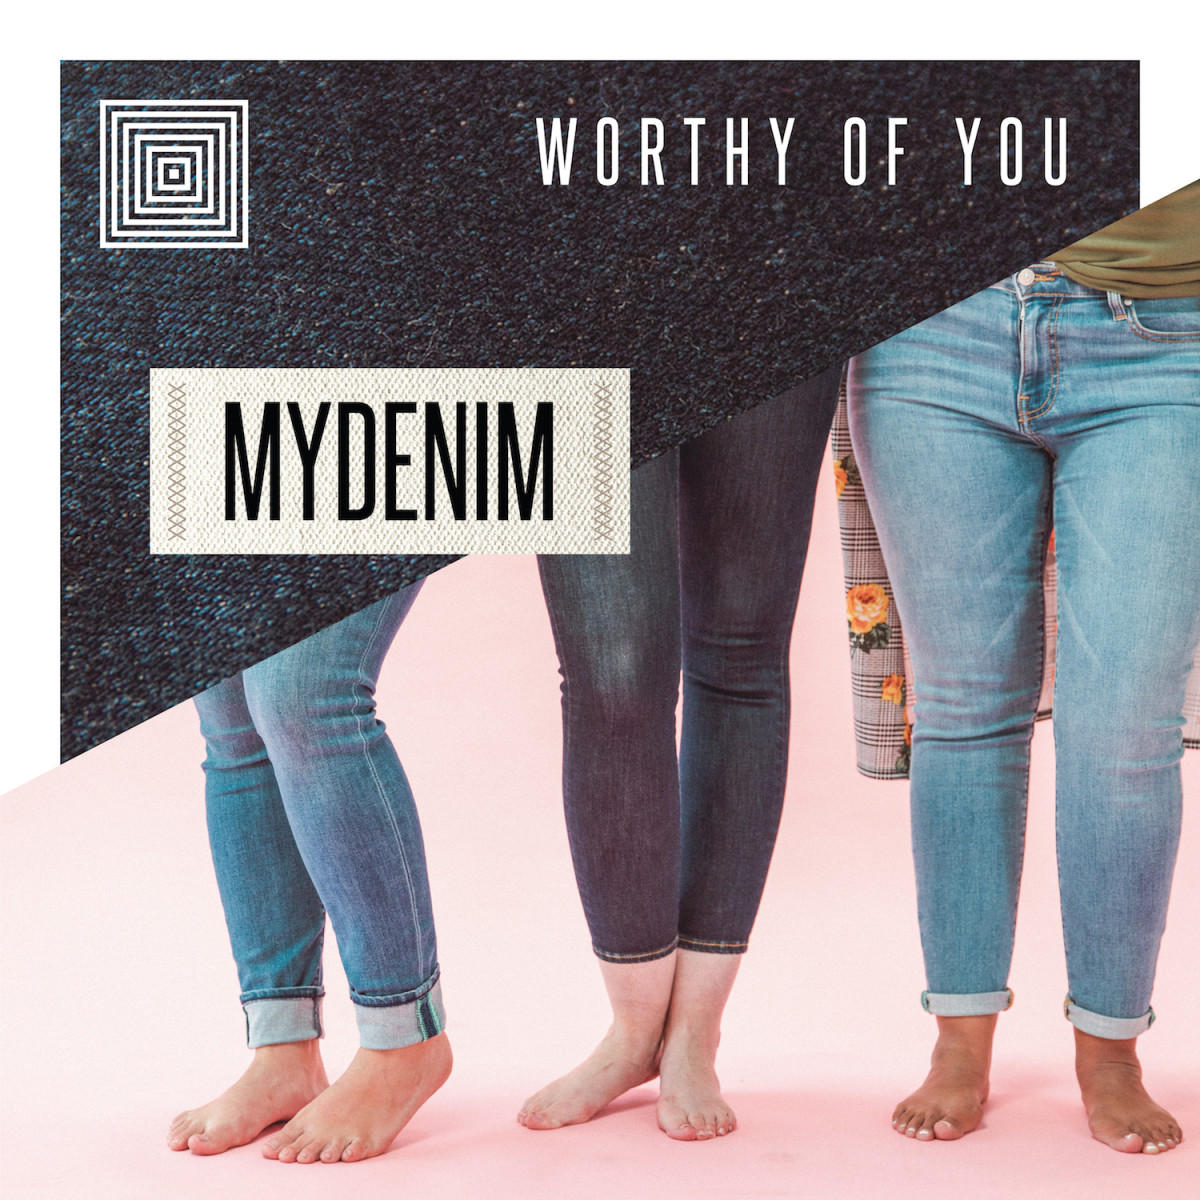 Lularoe's Mydenim Is Not Coming Soon!